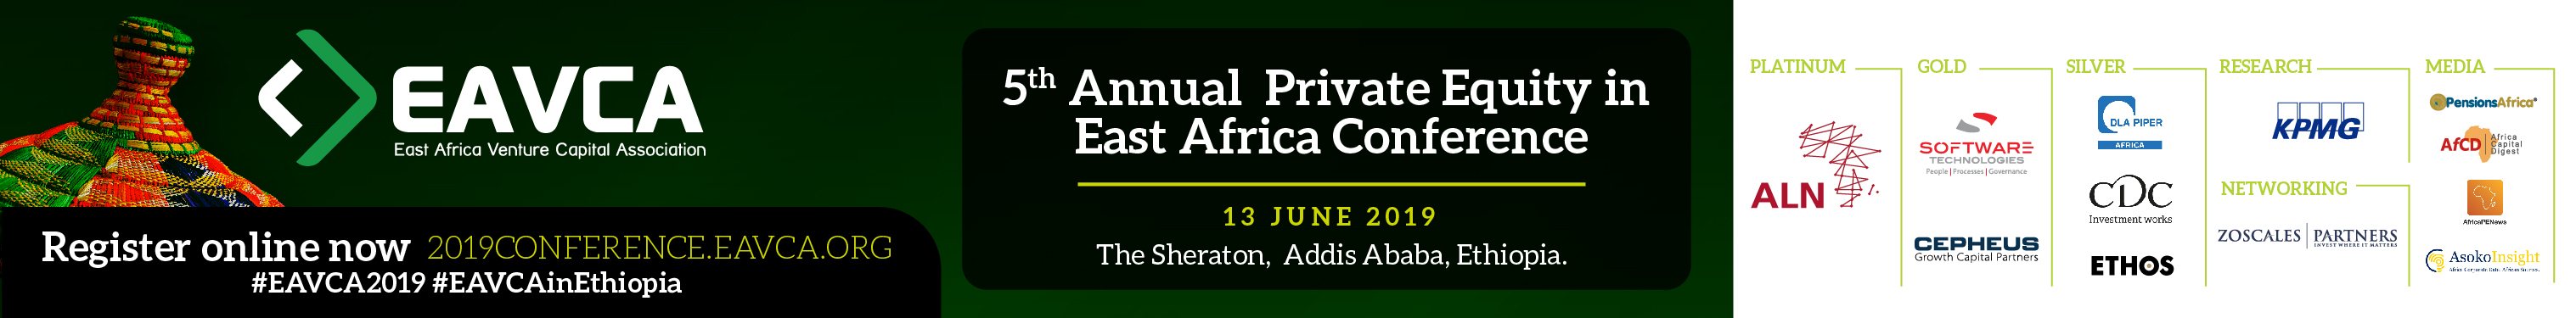 5th Annual Private Equity in East Africa  Conference